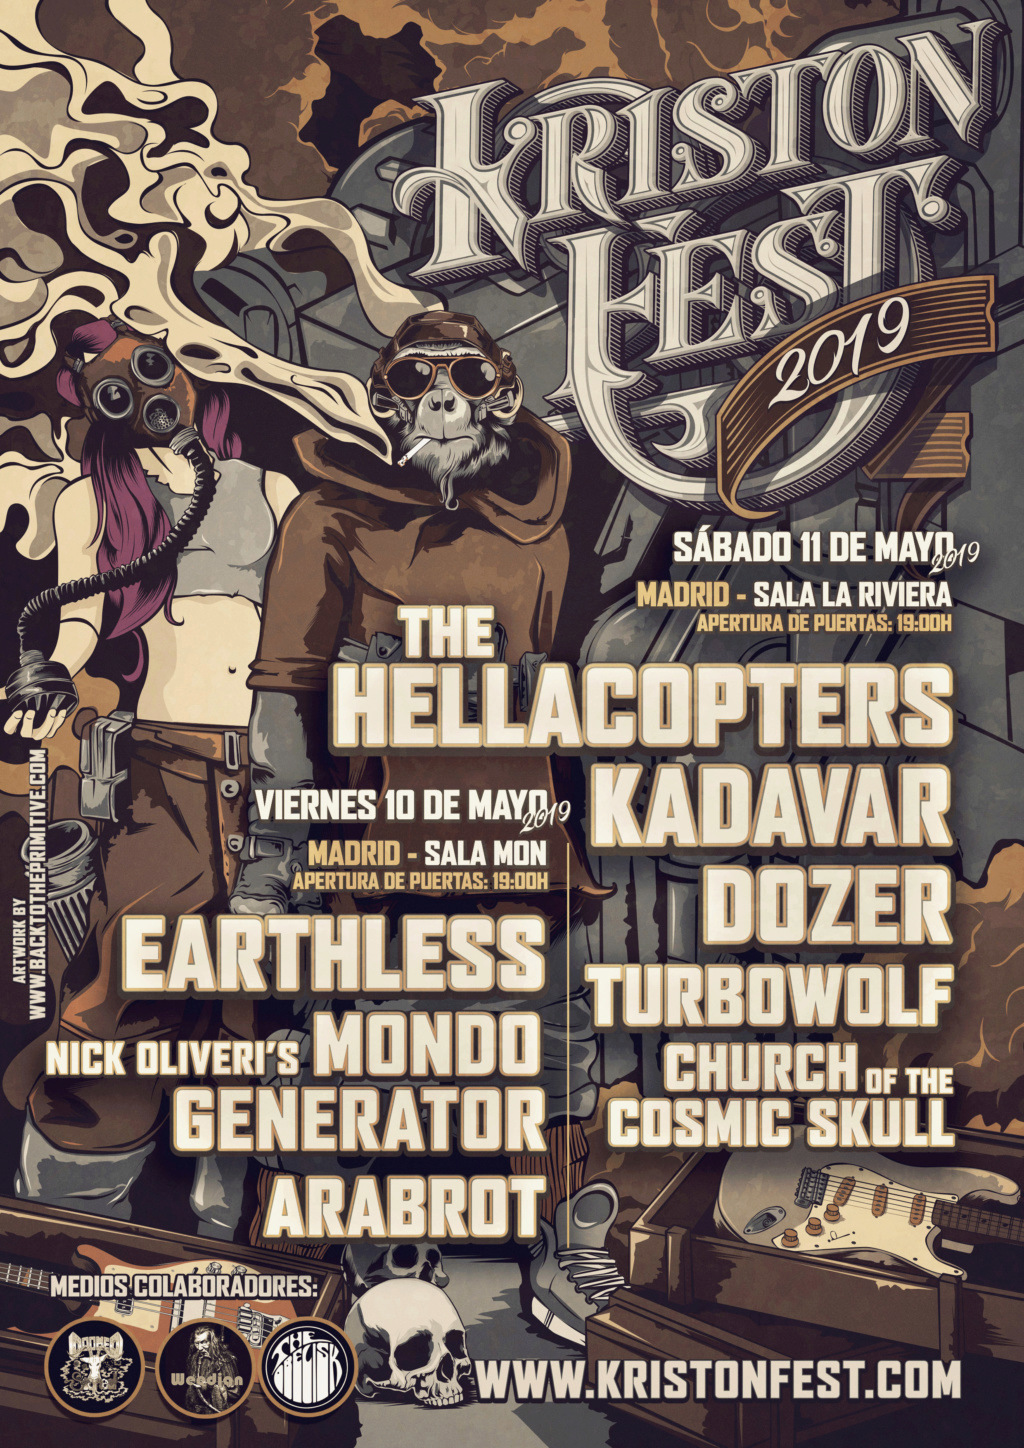 KRISTONFEST (10+11 Mayo, 2019) The Hellacopters, Earthless, Kadavar, Dozer, Nick Oliveri's Mondo Generator, Turbowolf, Church Of The Cosmic Skull y Arabrot - Página 8 Poster11